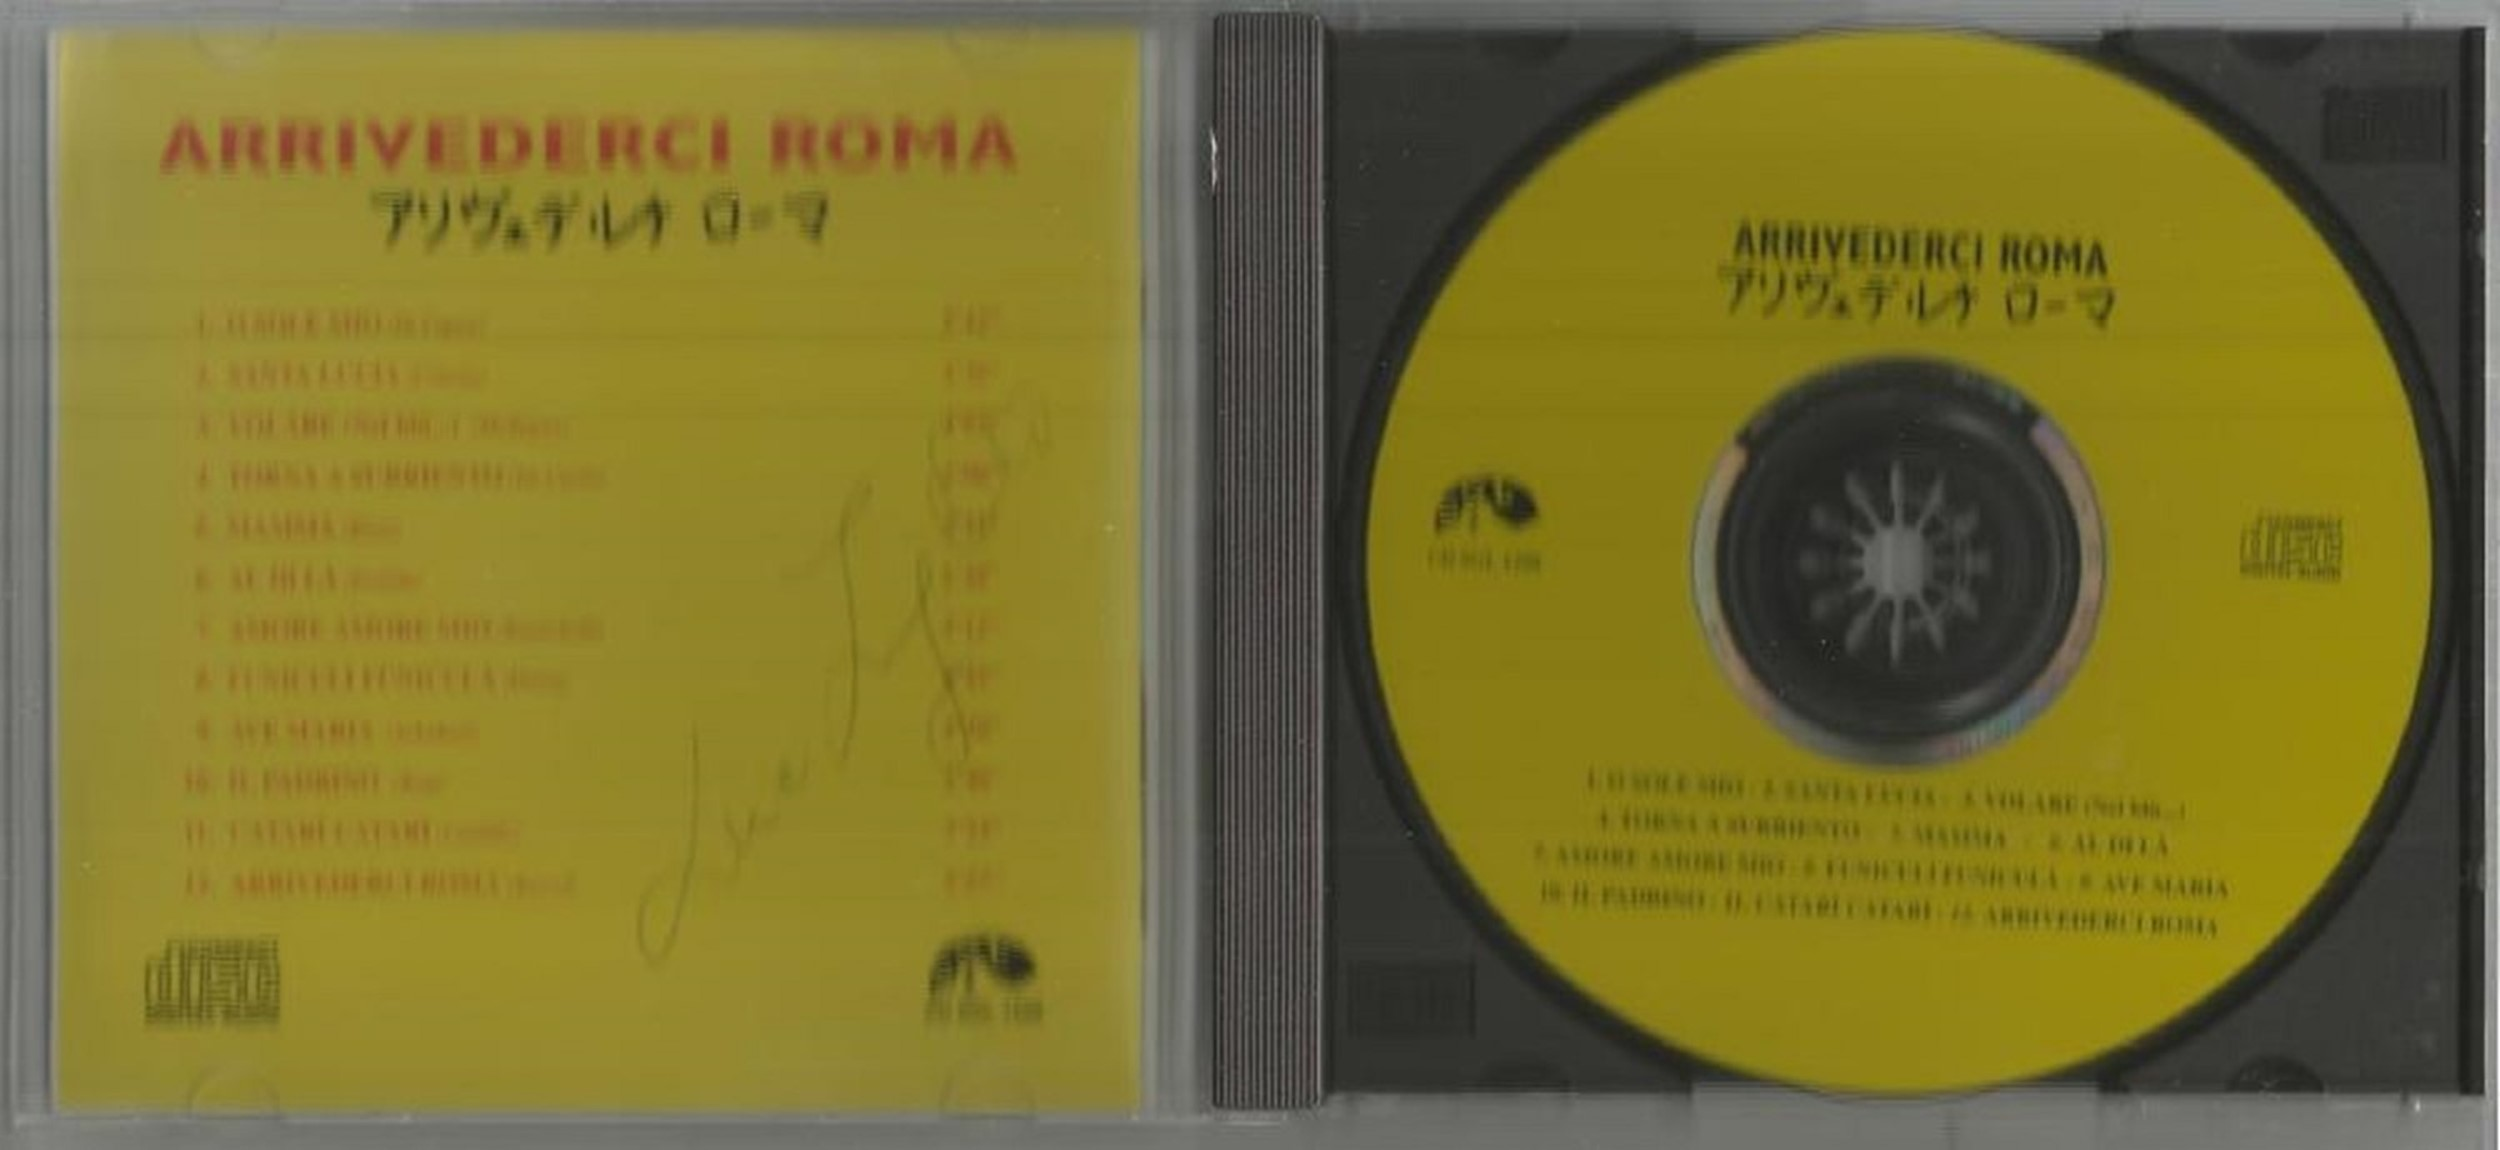 6 Signed CDs Including Andrea Ross Moon River Disc Included, Foley and Hepburn Con Te Partiro Disc - Image 3 of 6